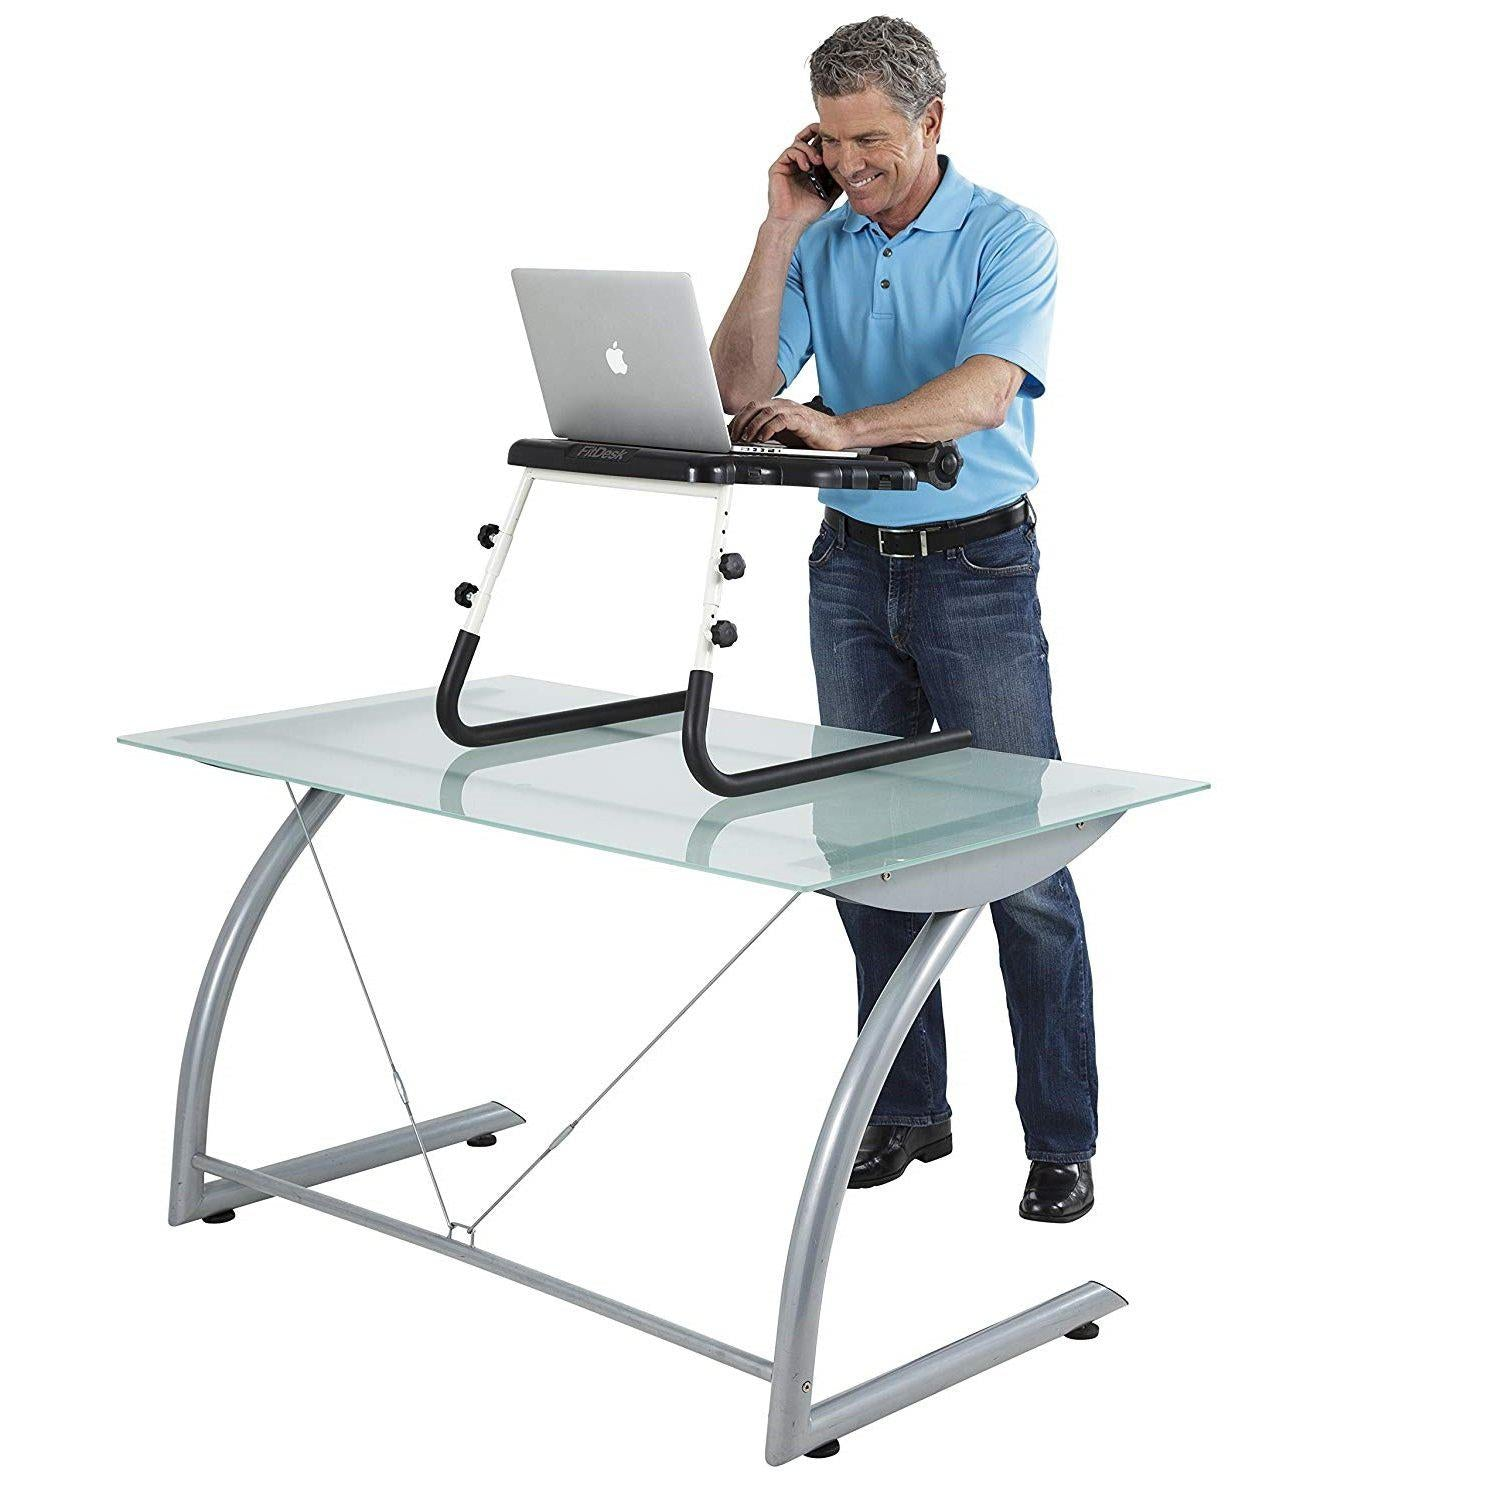 Nextgen Portable Tabletop Standing Desk with Free Shipping